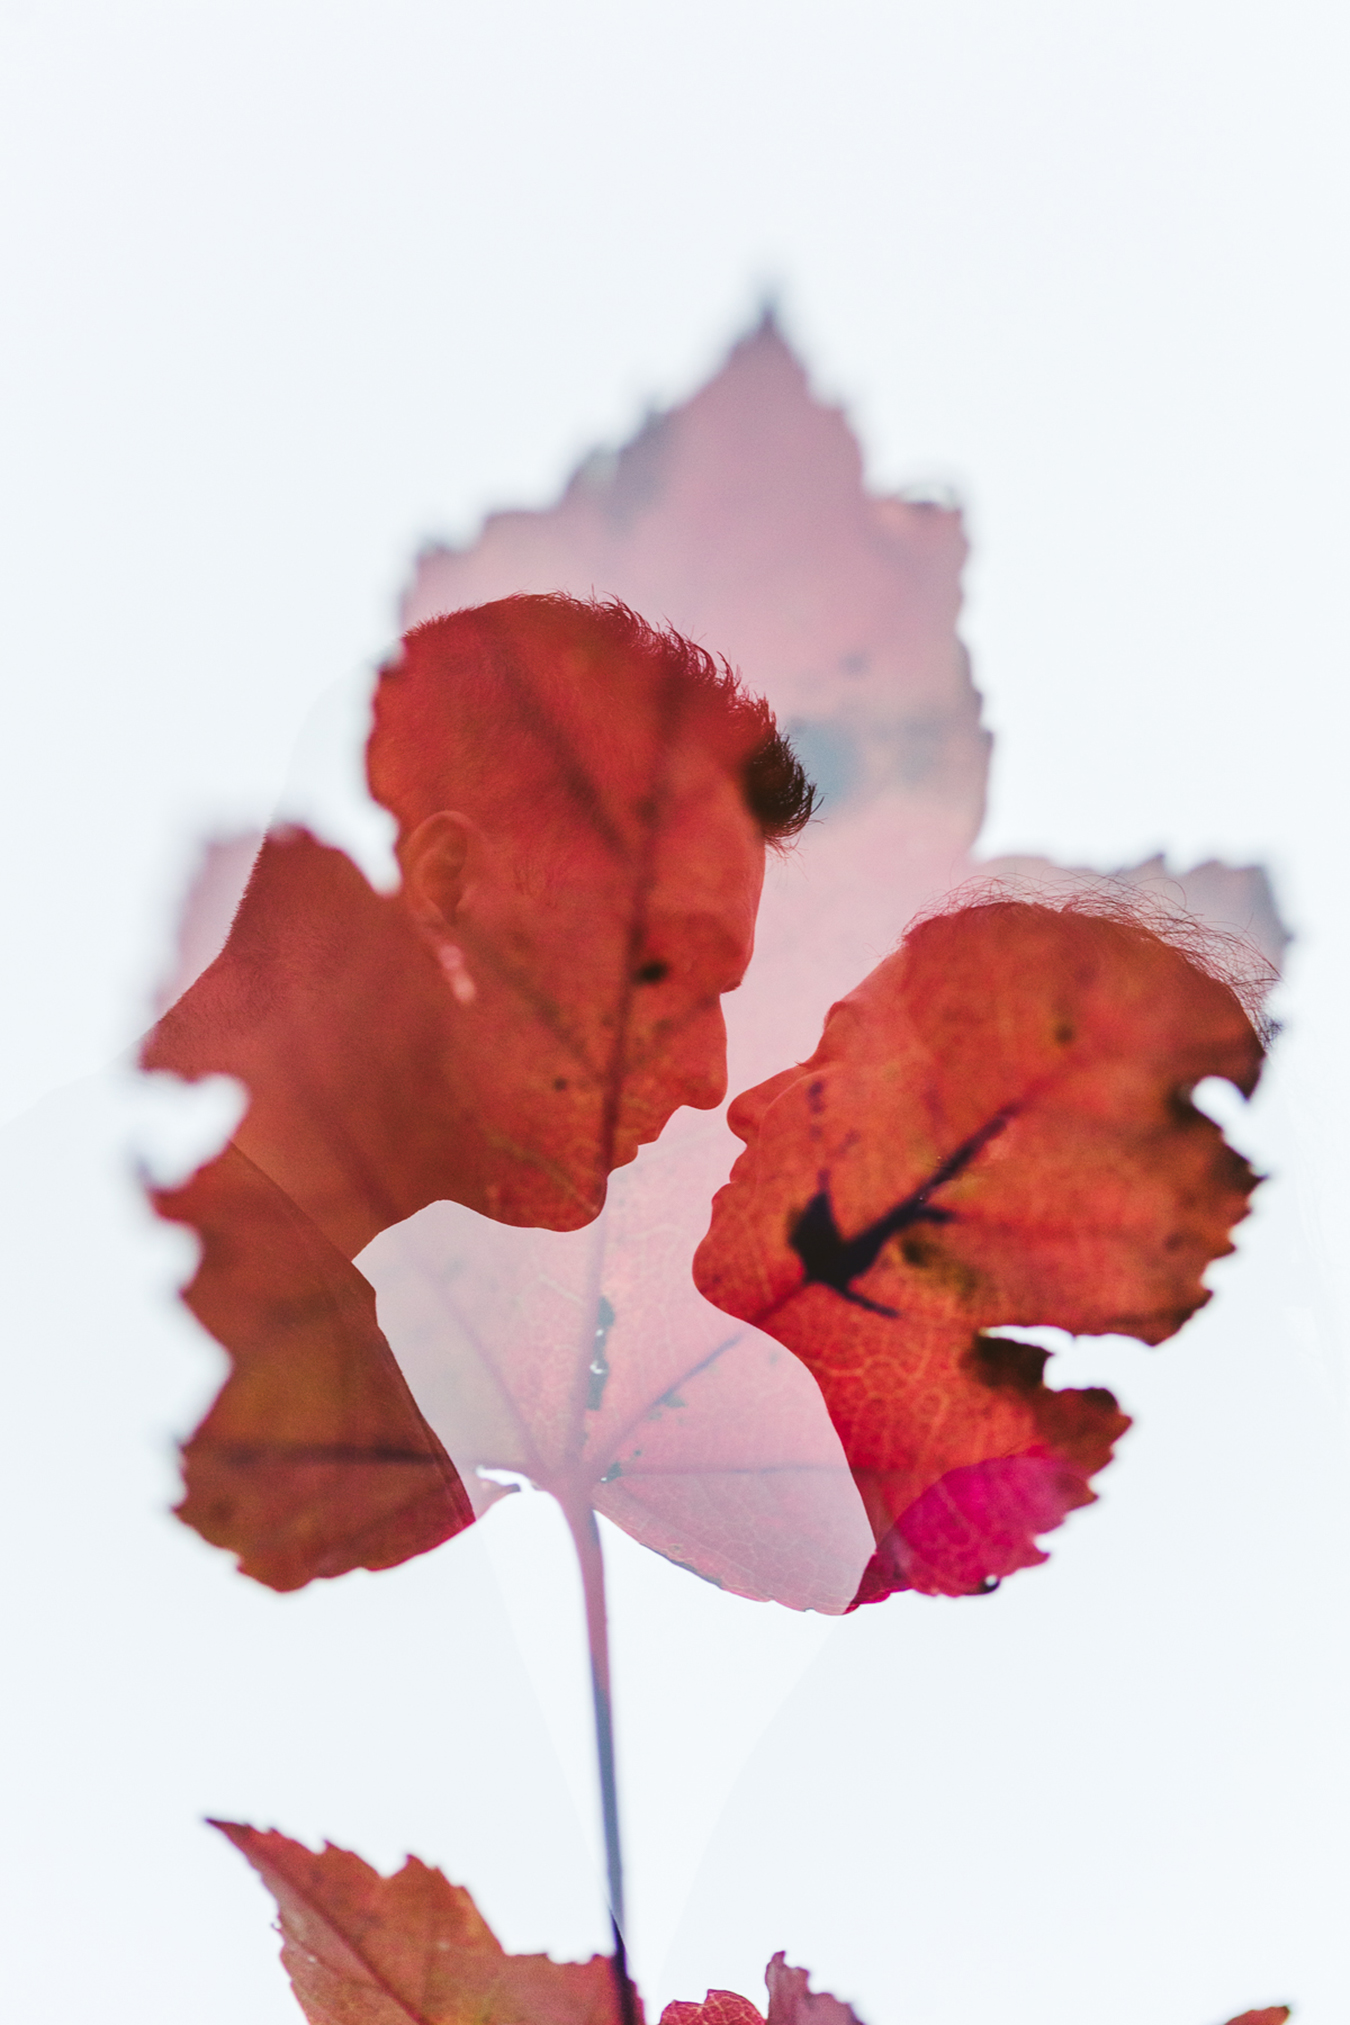 double exposure with a maple leaf